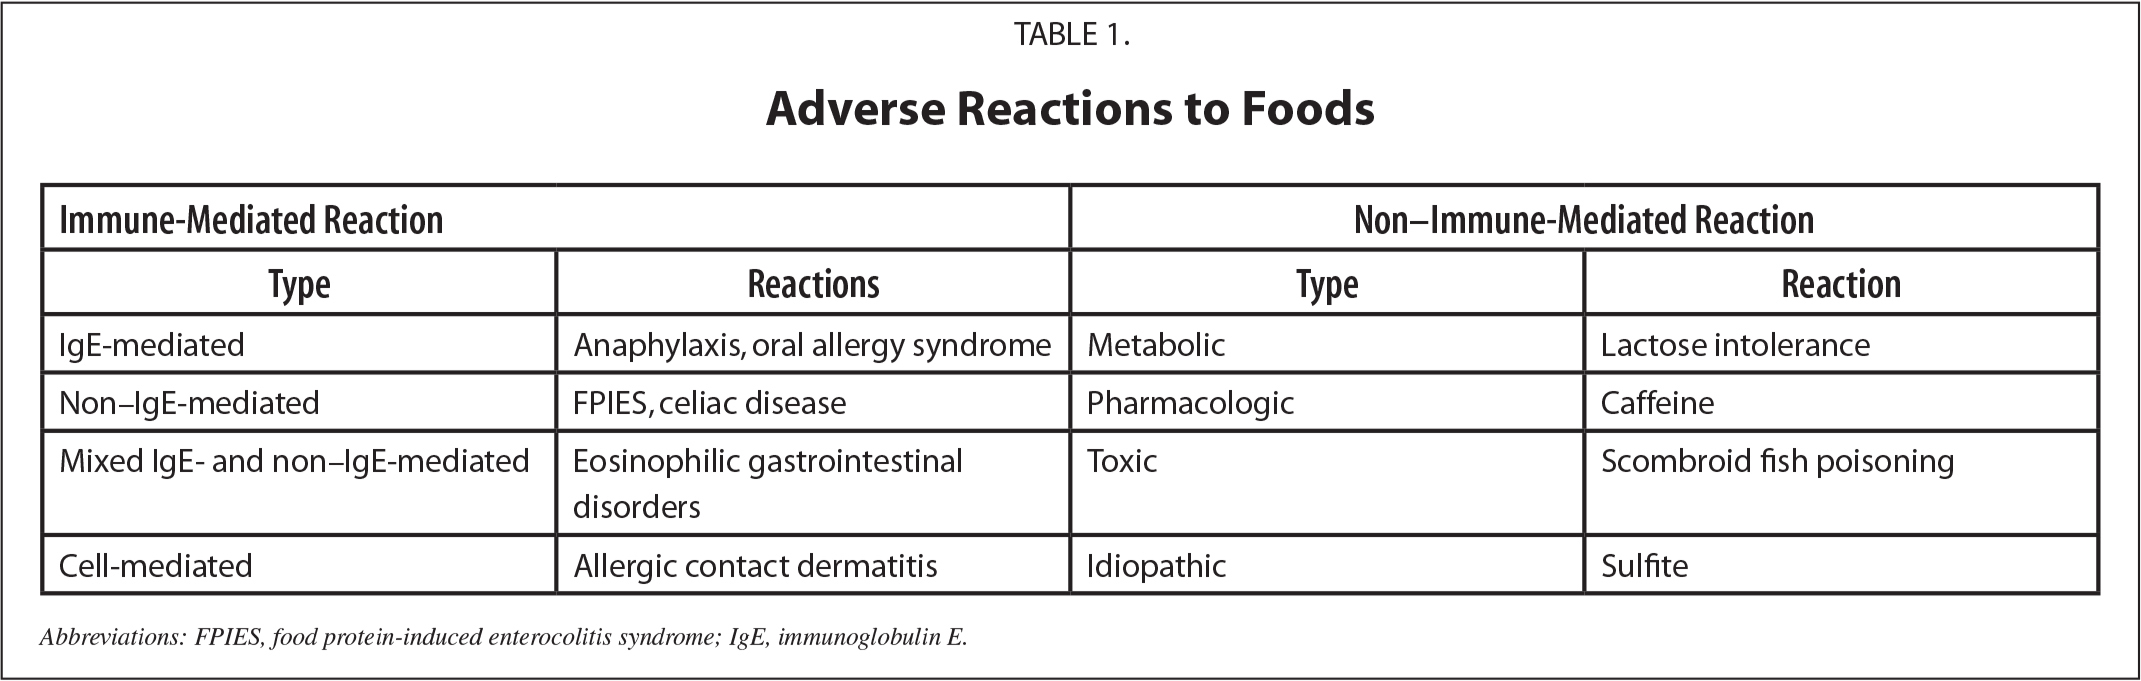 Adverse Reactions to Foods